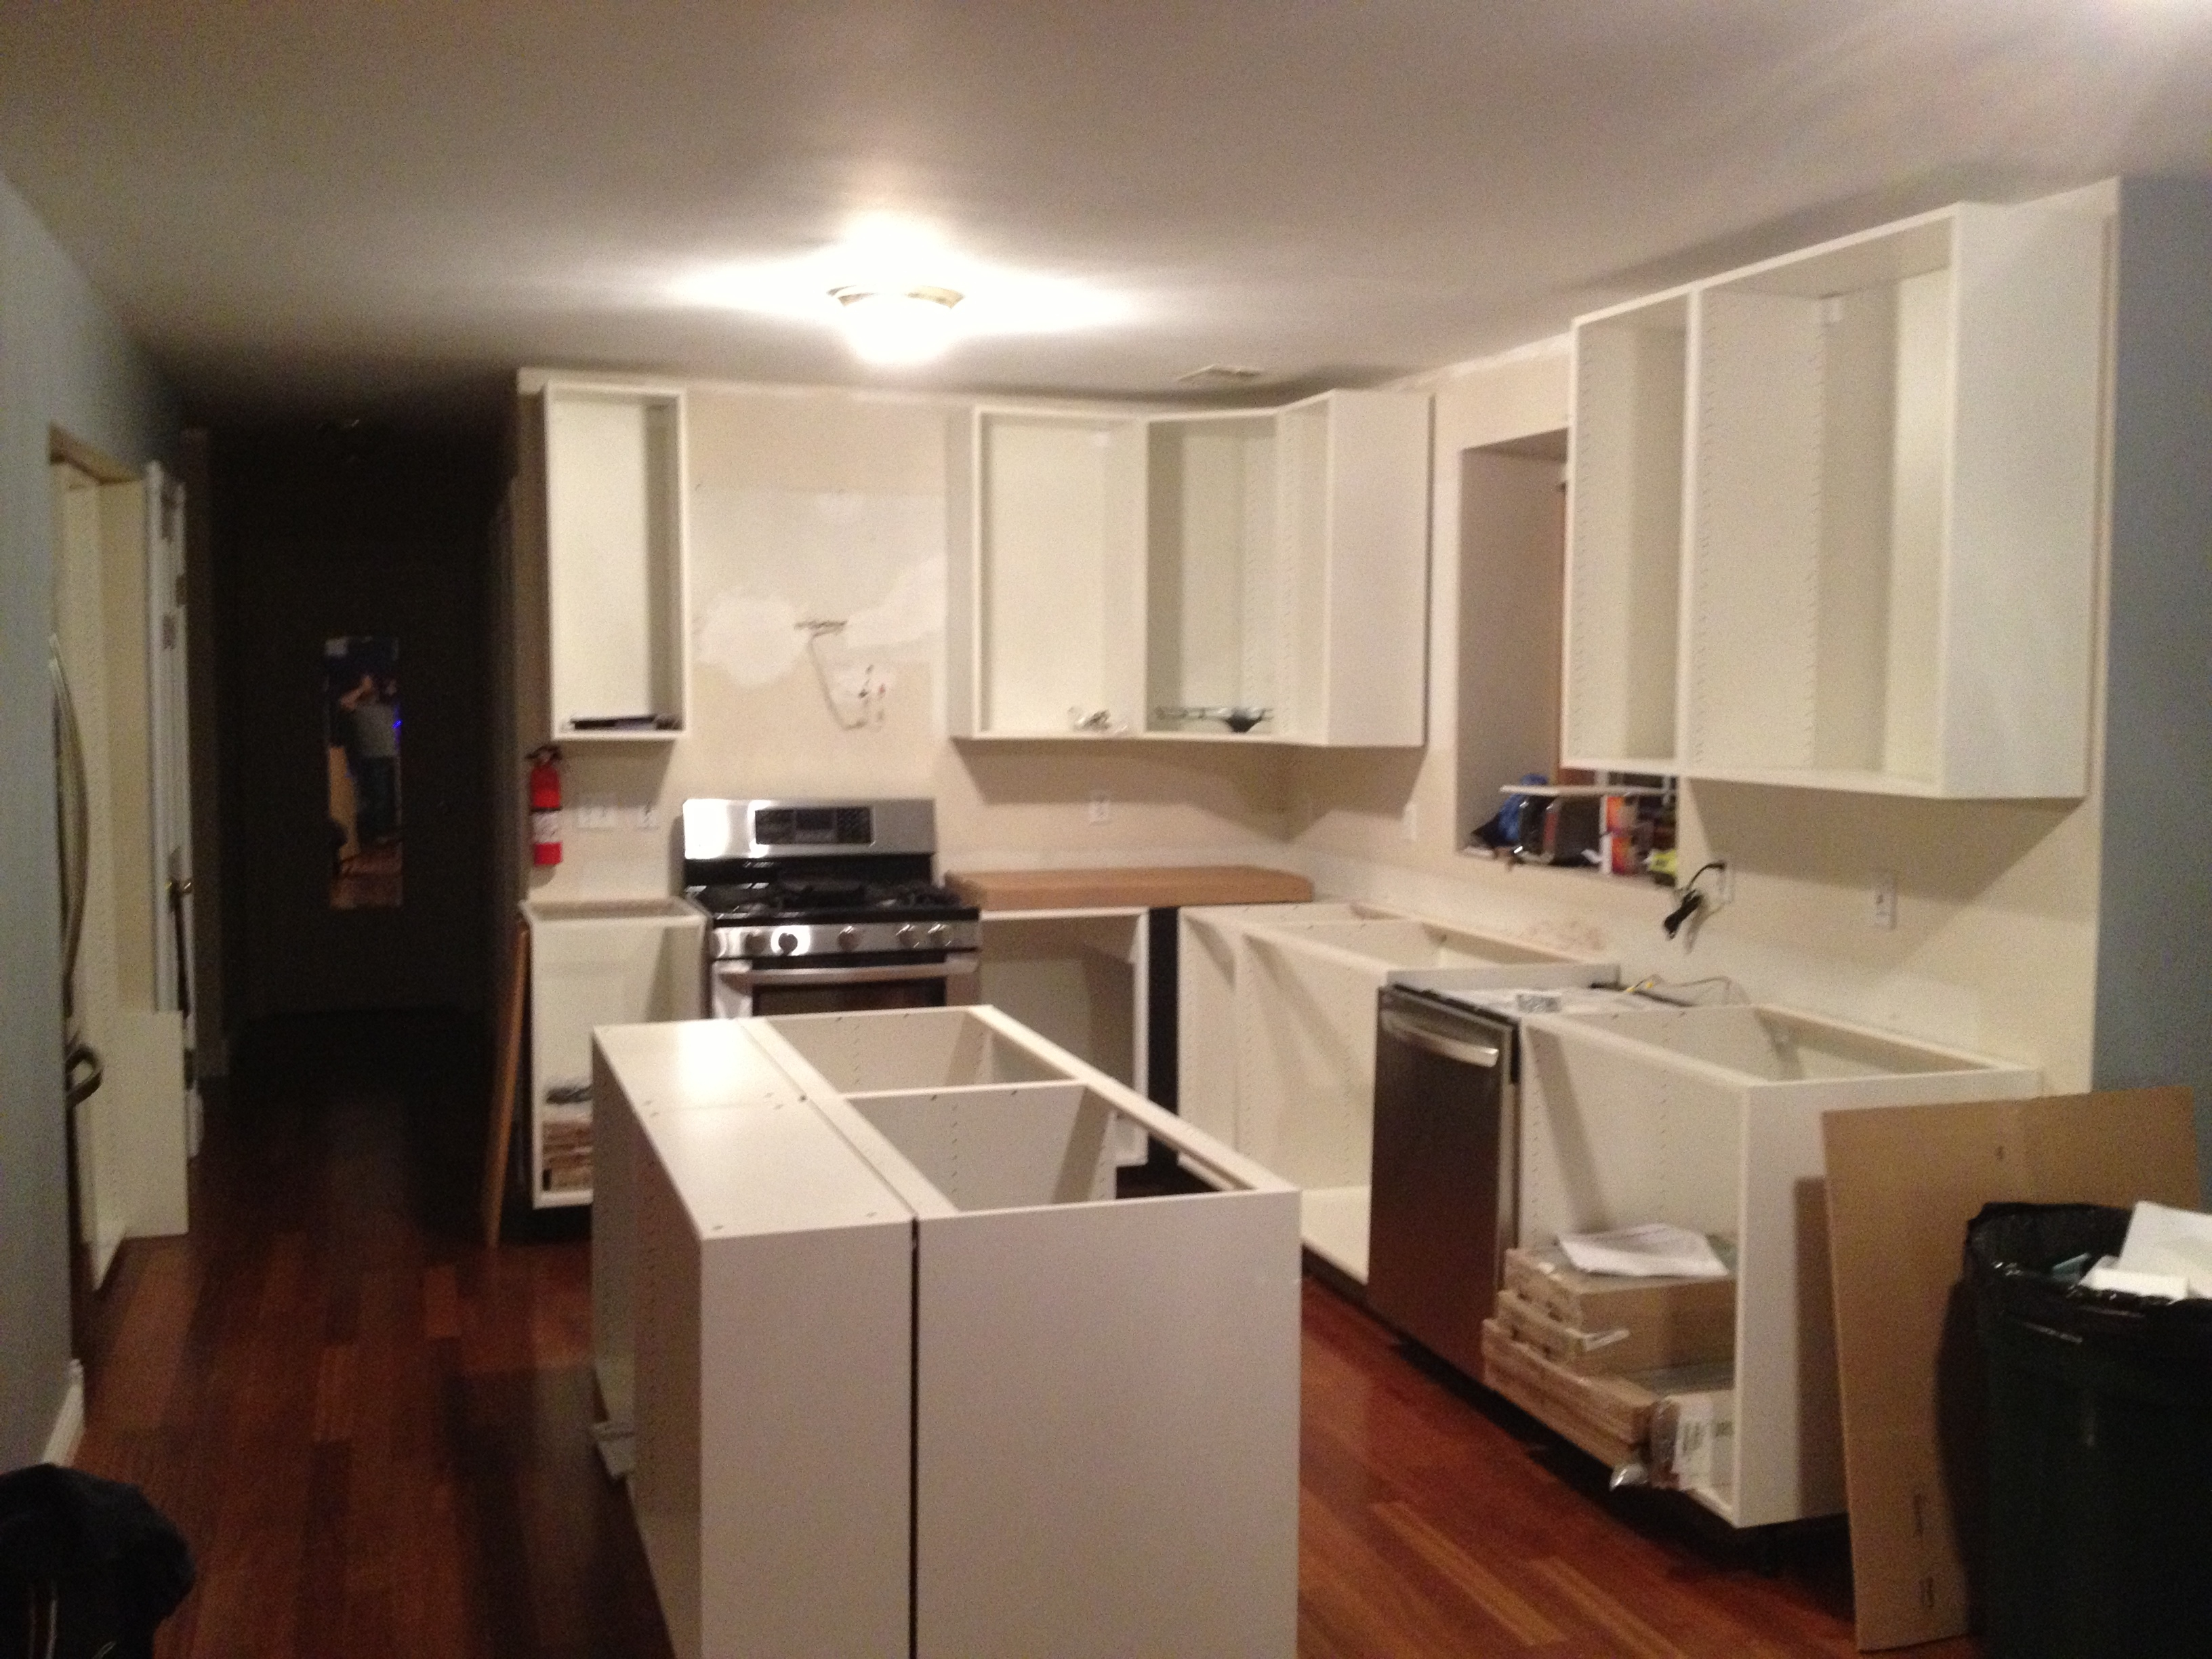 Ikea Furniture Pertaining To Cabinet Hardware Placement Assembly